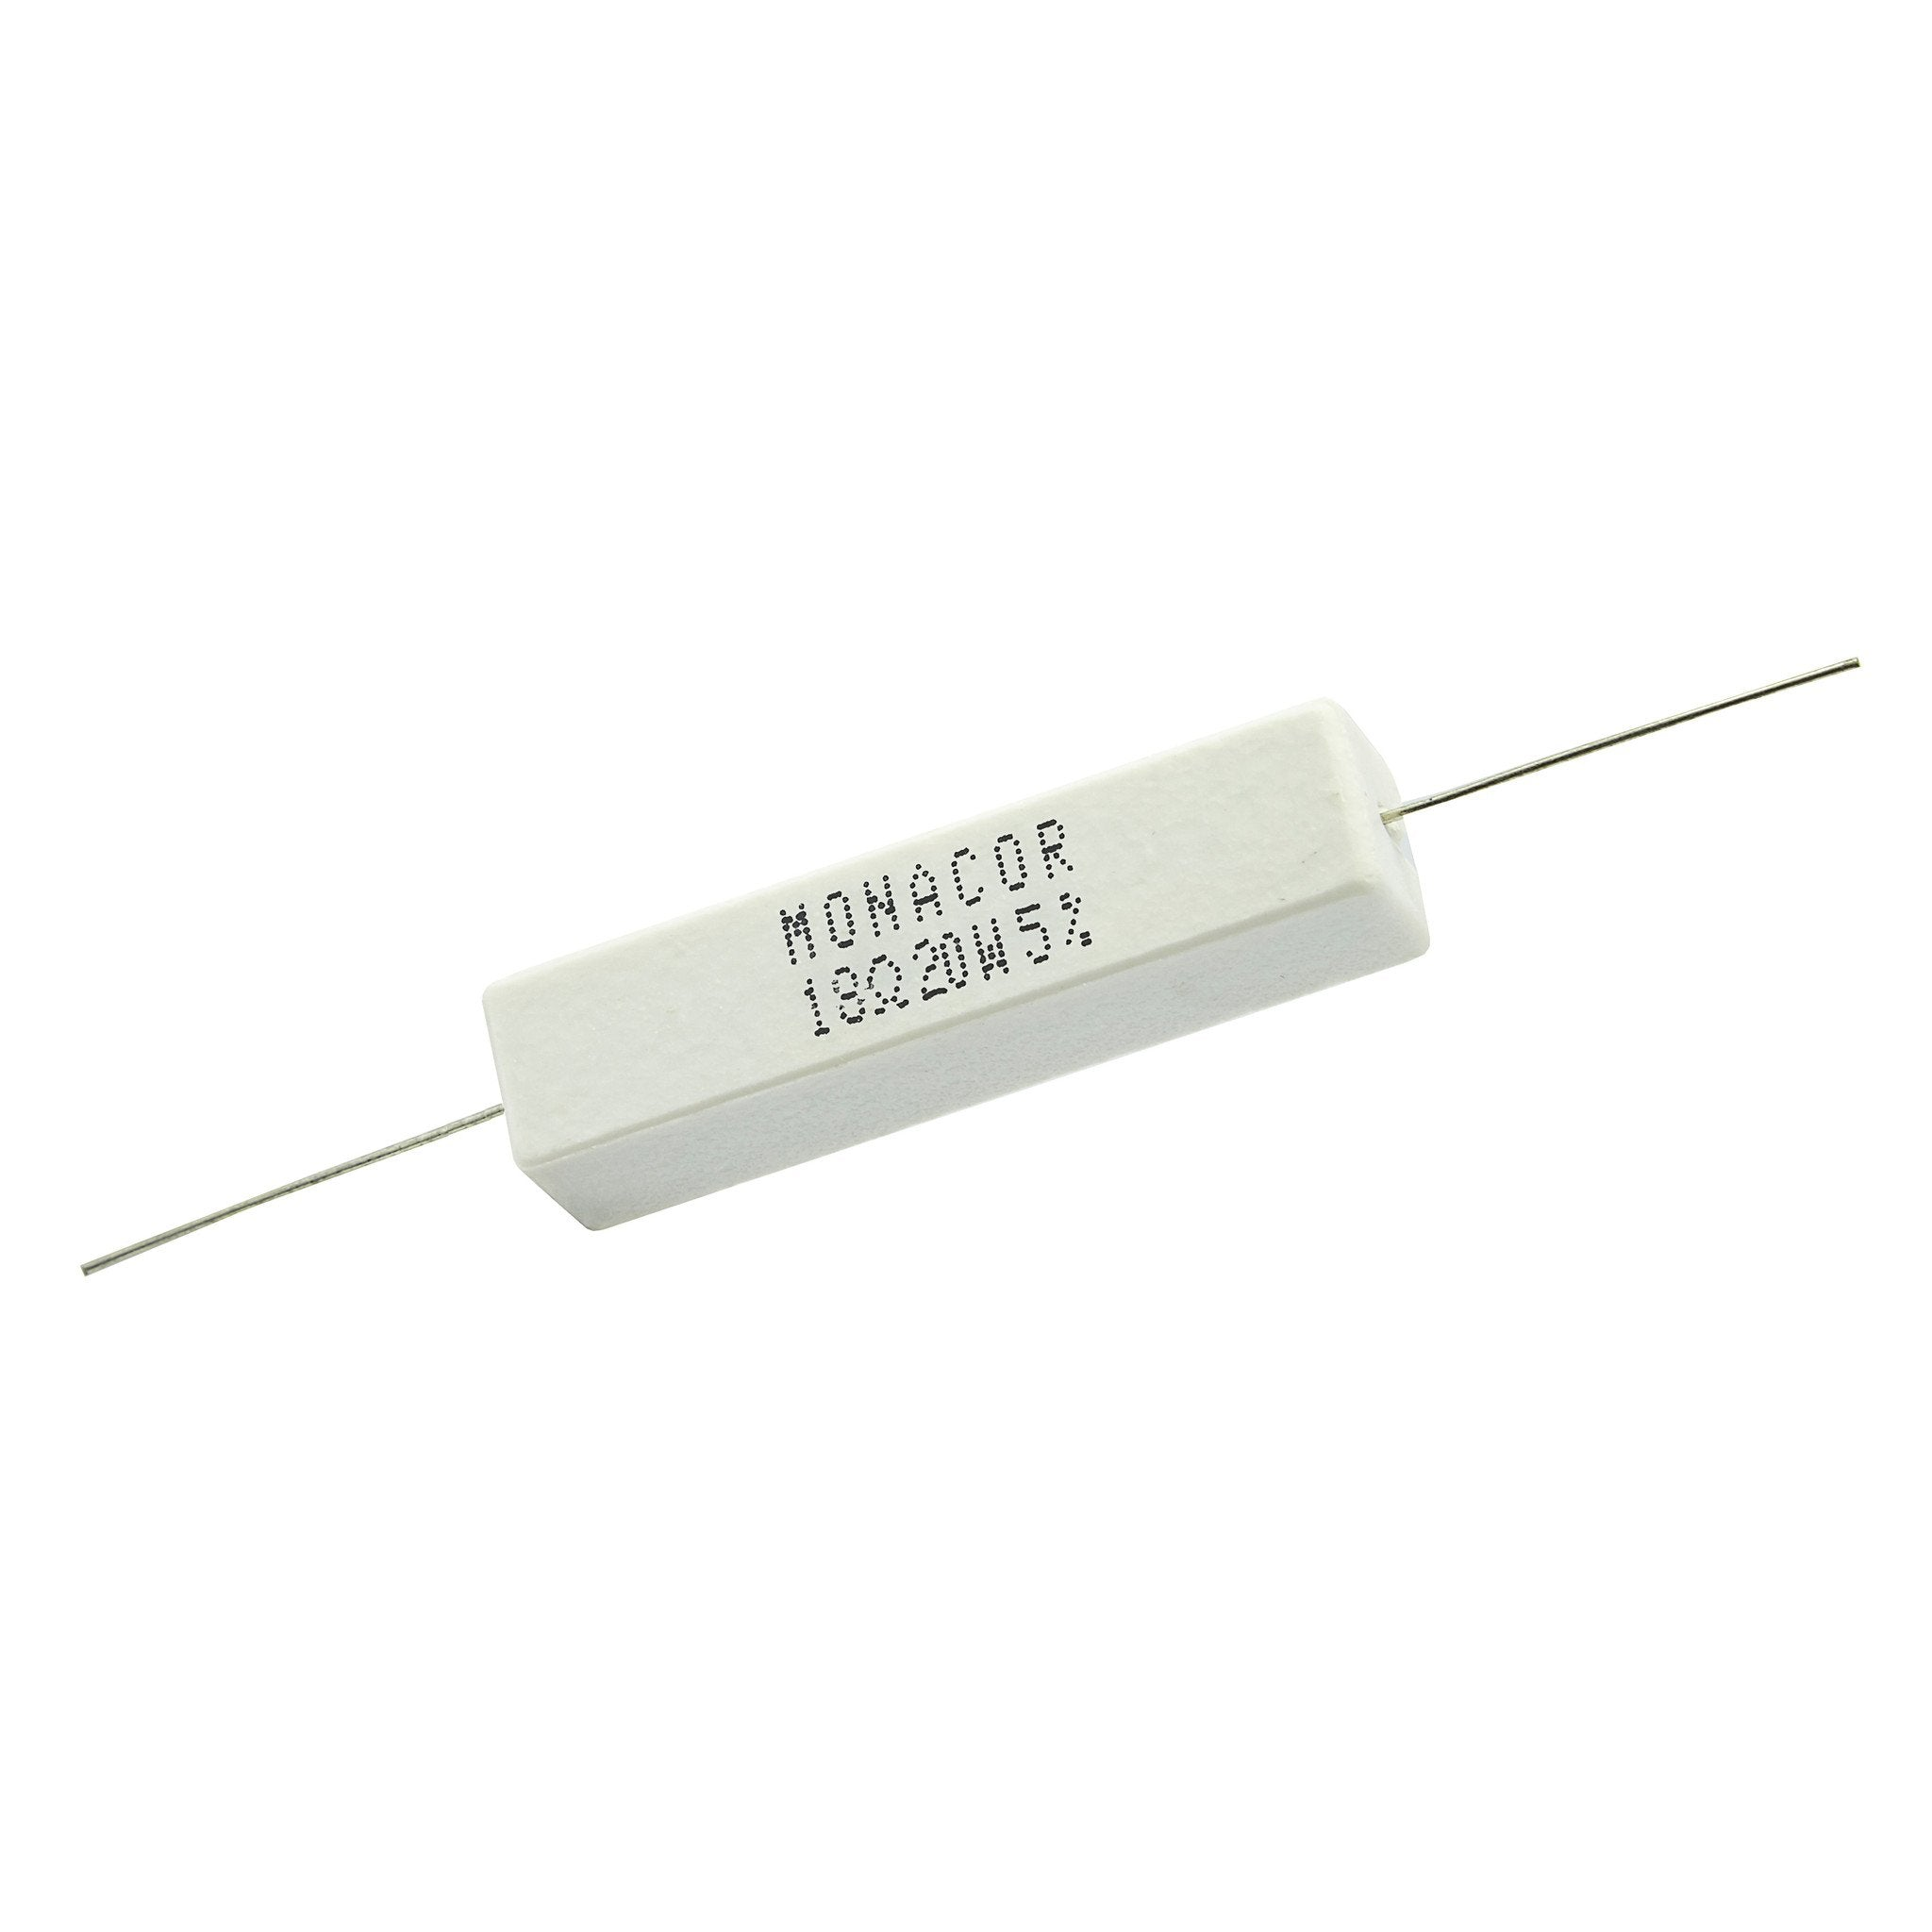 18 Ohm 20 Watt 5% Ceramic Wirewound Resistor - Willys-Hifi Ltd